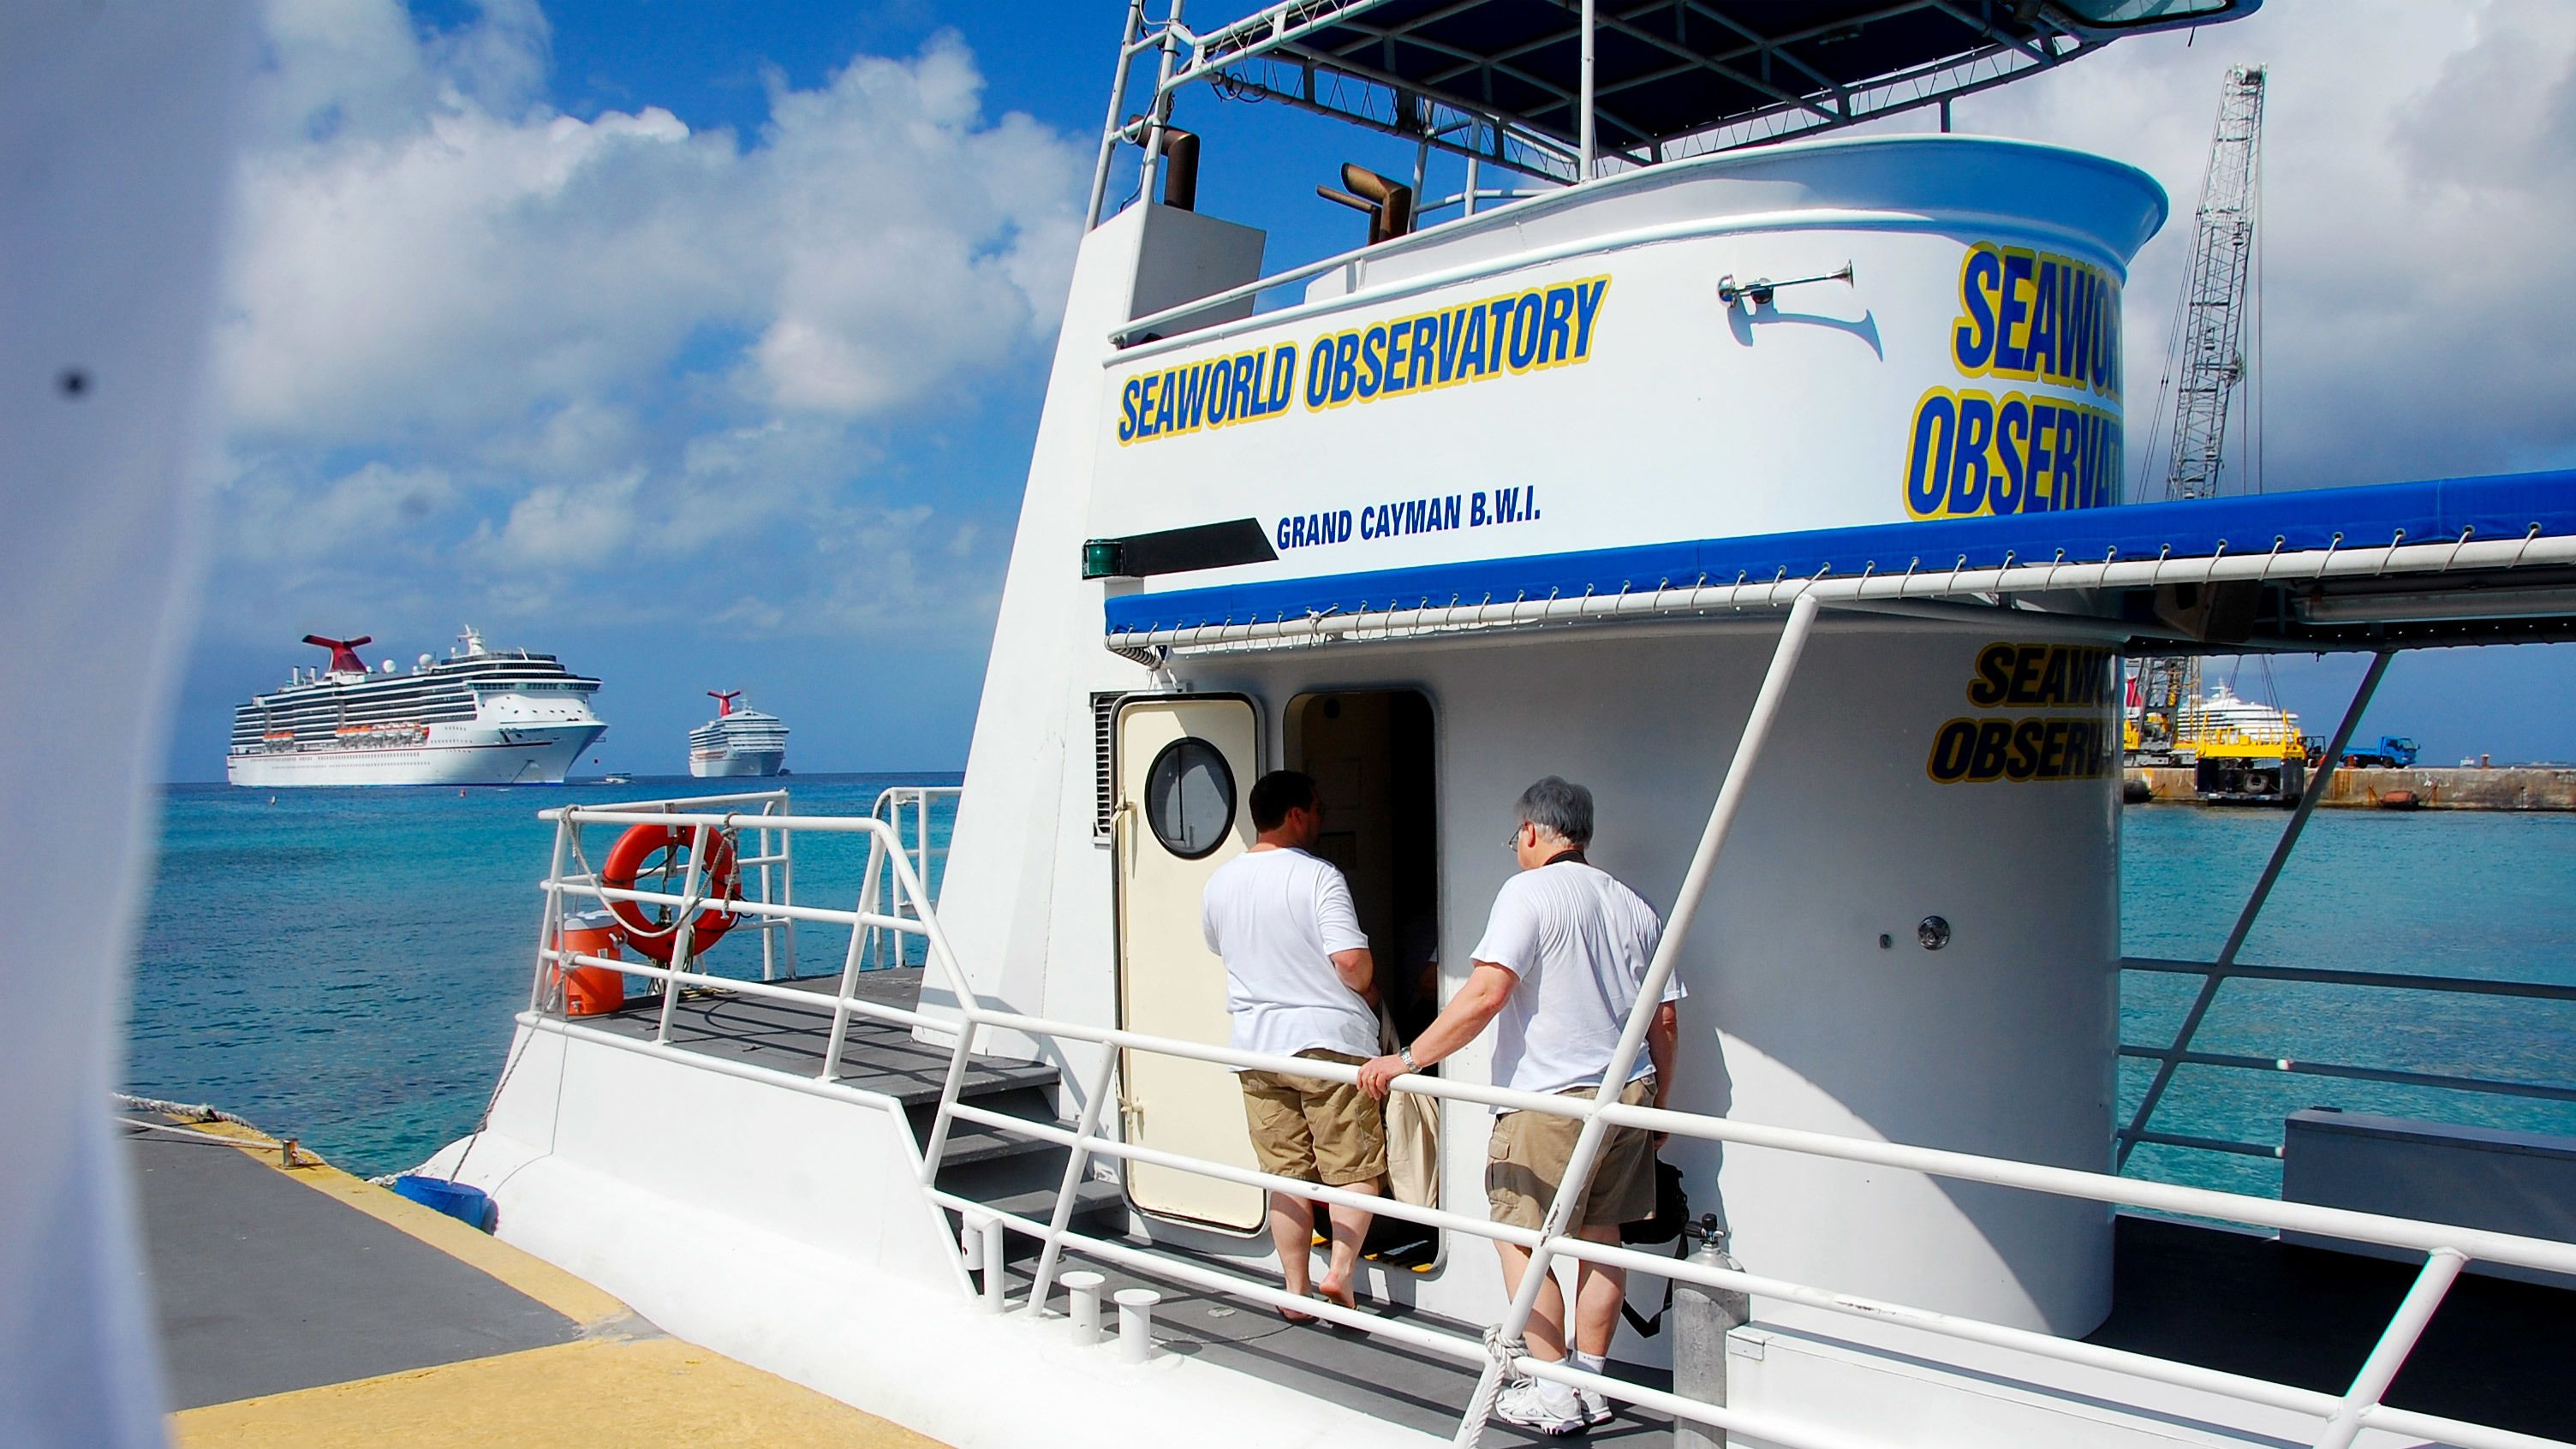 Boarding the observatory in Grand Cayman